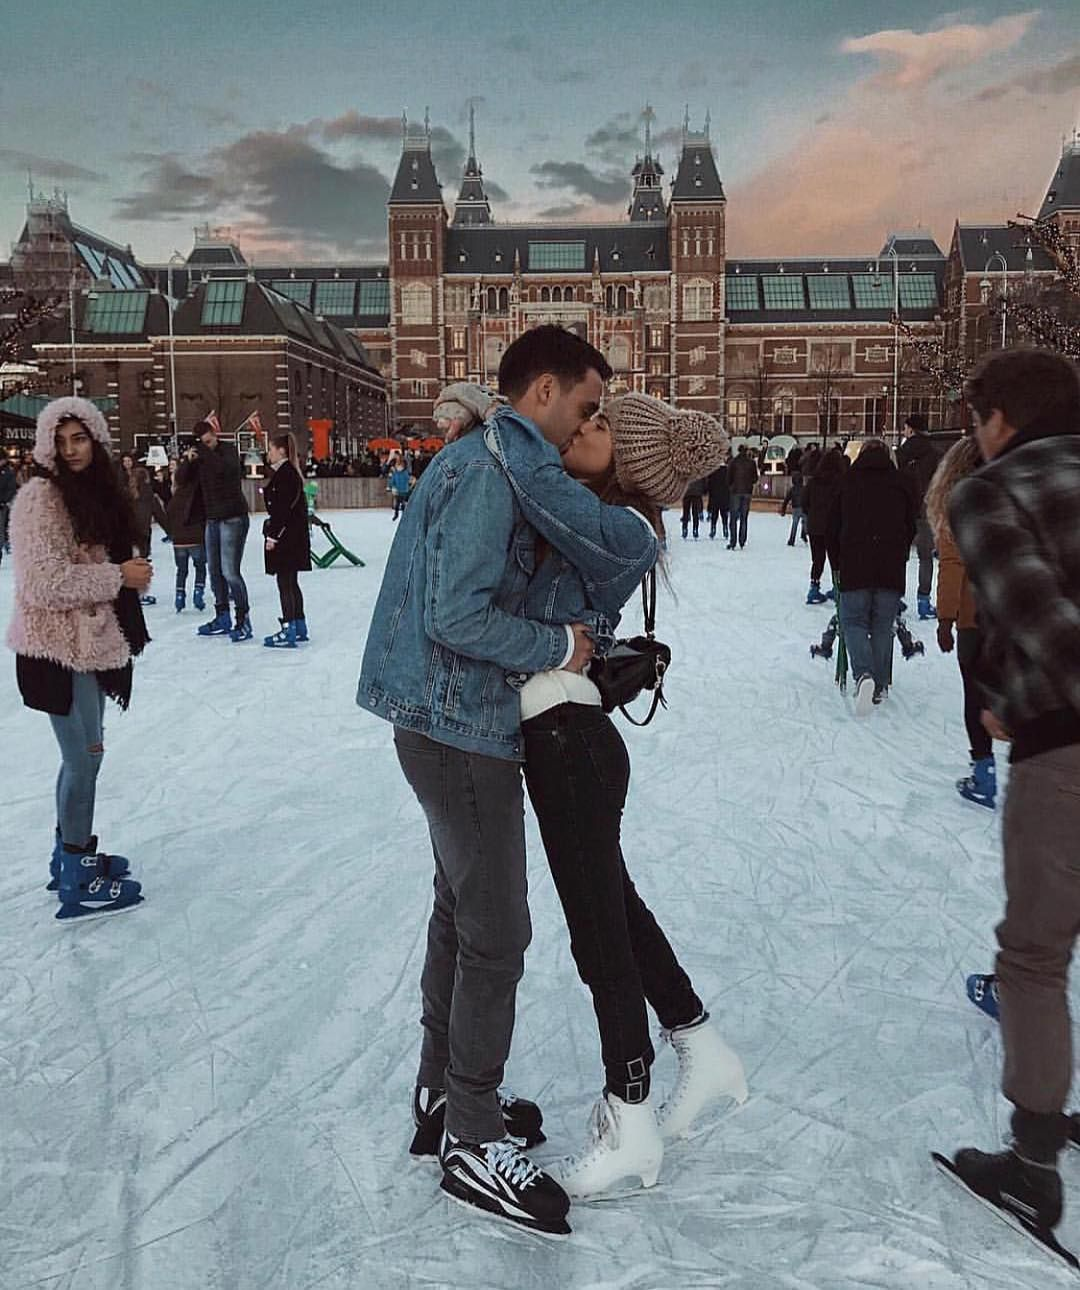 Comment Your Favorite Ice Skating Couple Via Fashion